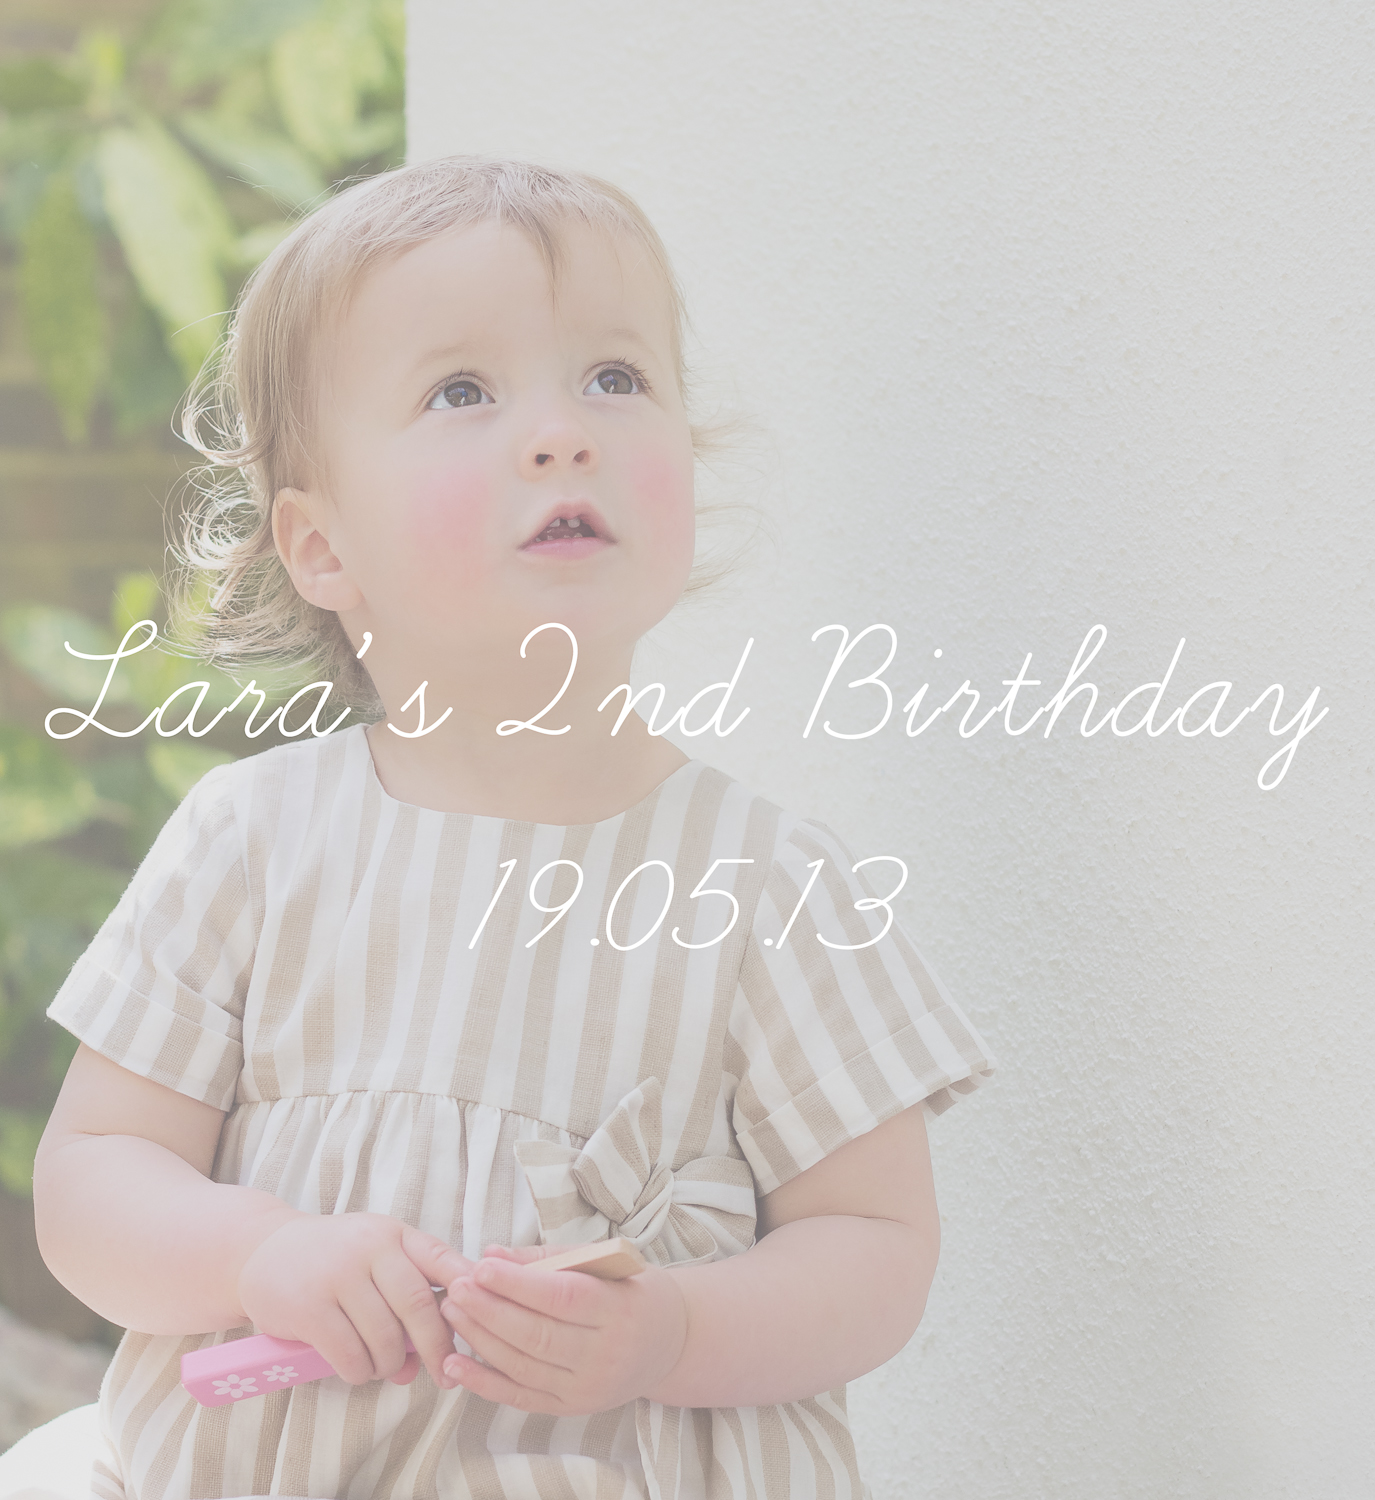 Girl's 2nd Birthday party photography - the birthday girl is sitting down and looking up, she is wearing a cream and white striped party frock